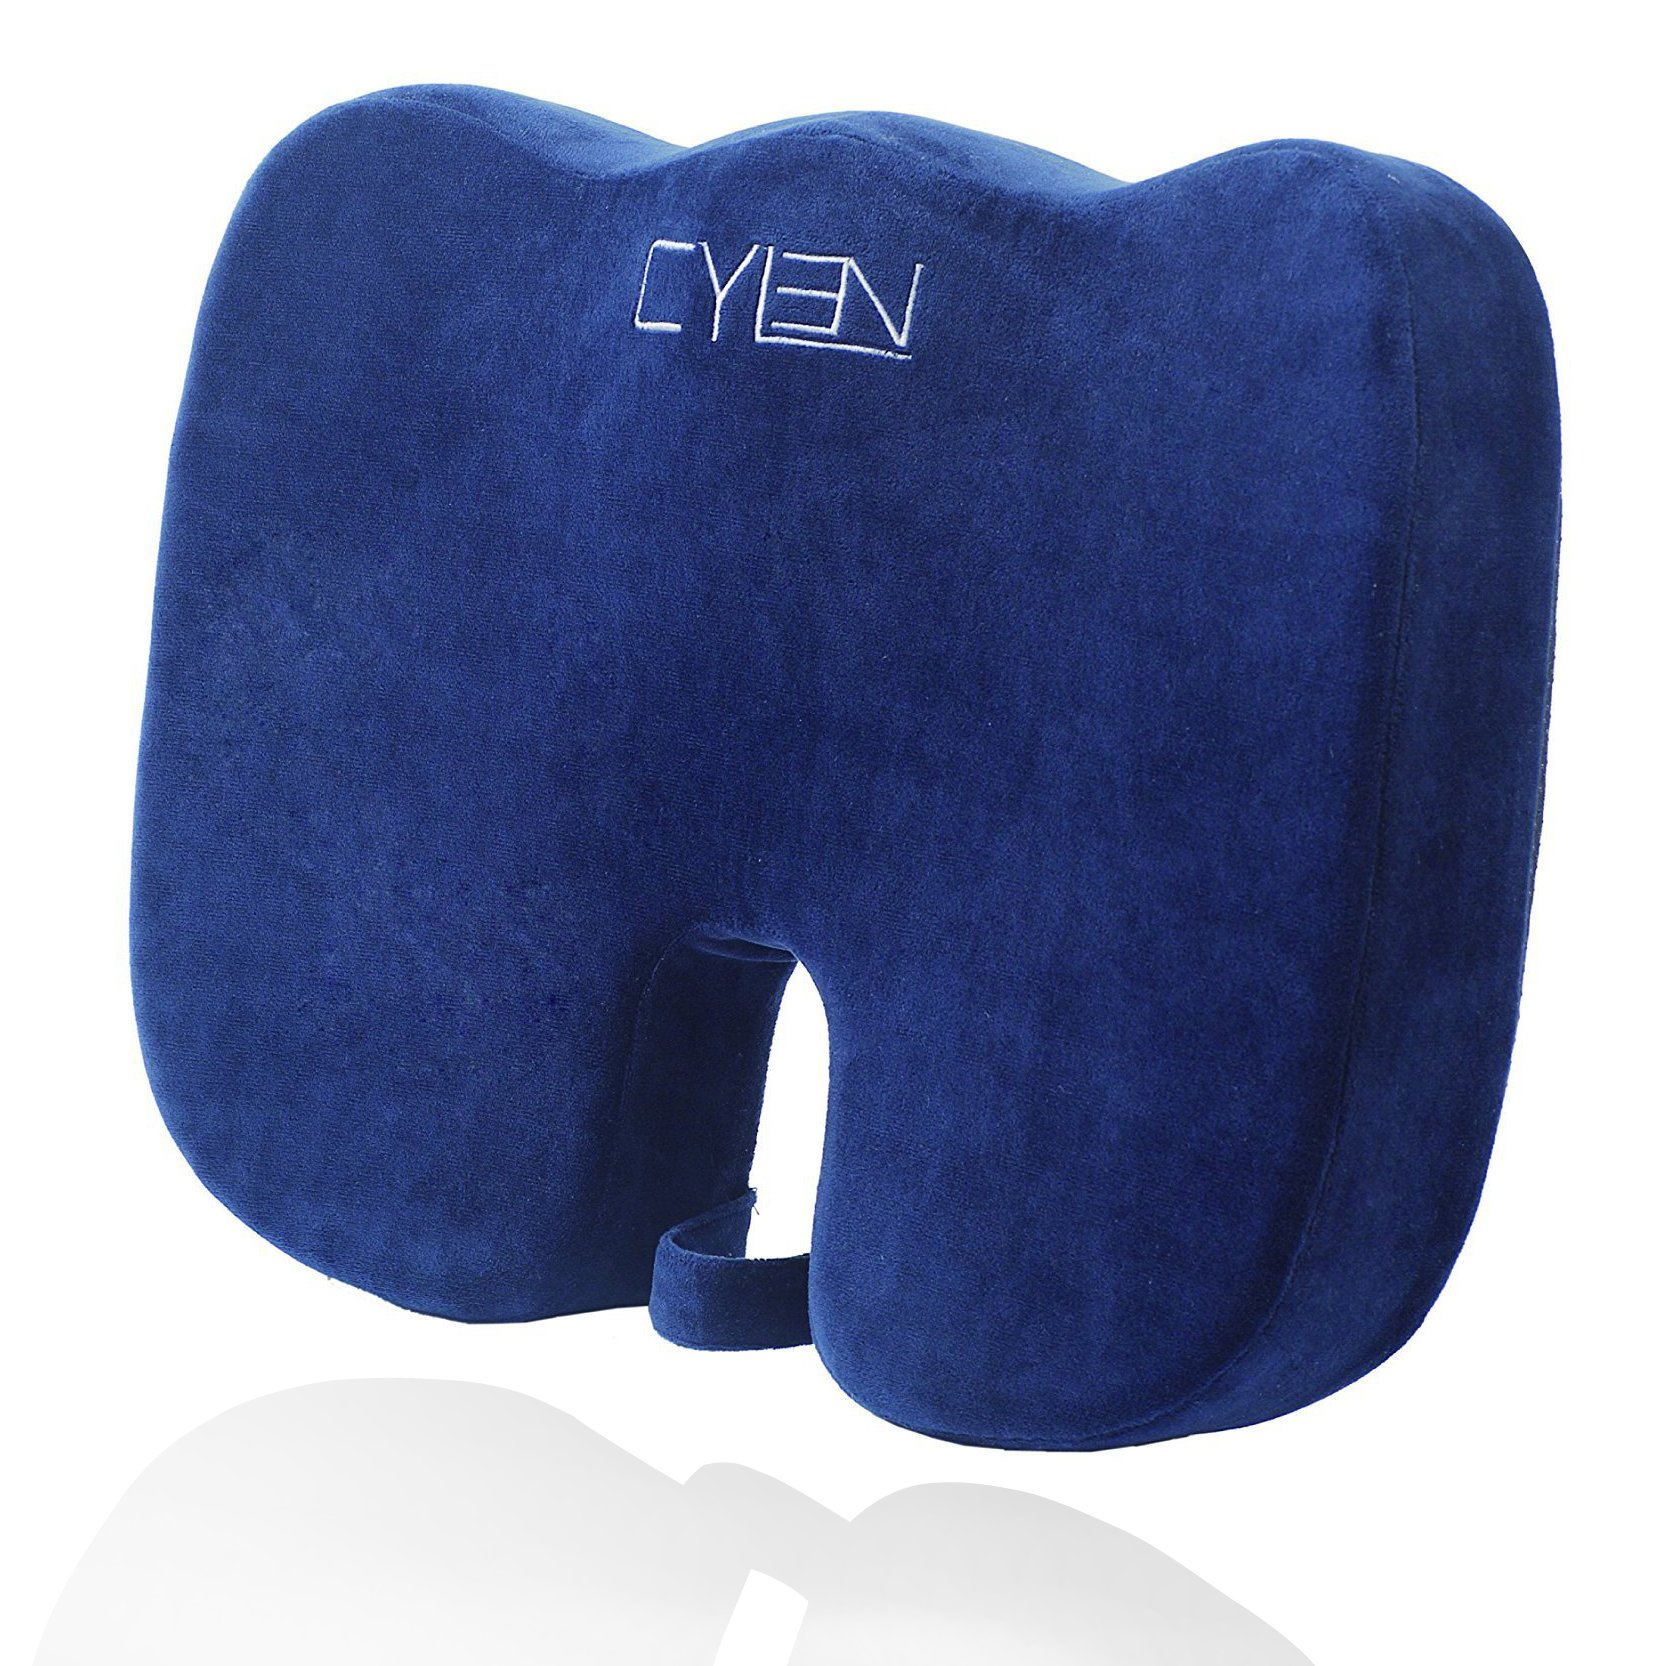 CYLEN Home-Memory Foam Bamboo Charcoal Infused Ventilated Orthopedic Seat Cushion For Car And Office Chair - Blue Washable & Breathable Cover (Navy blue)